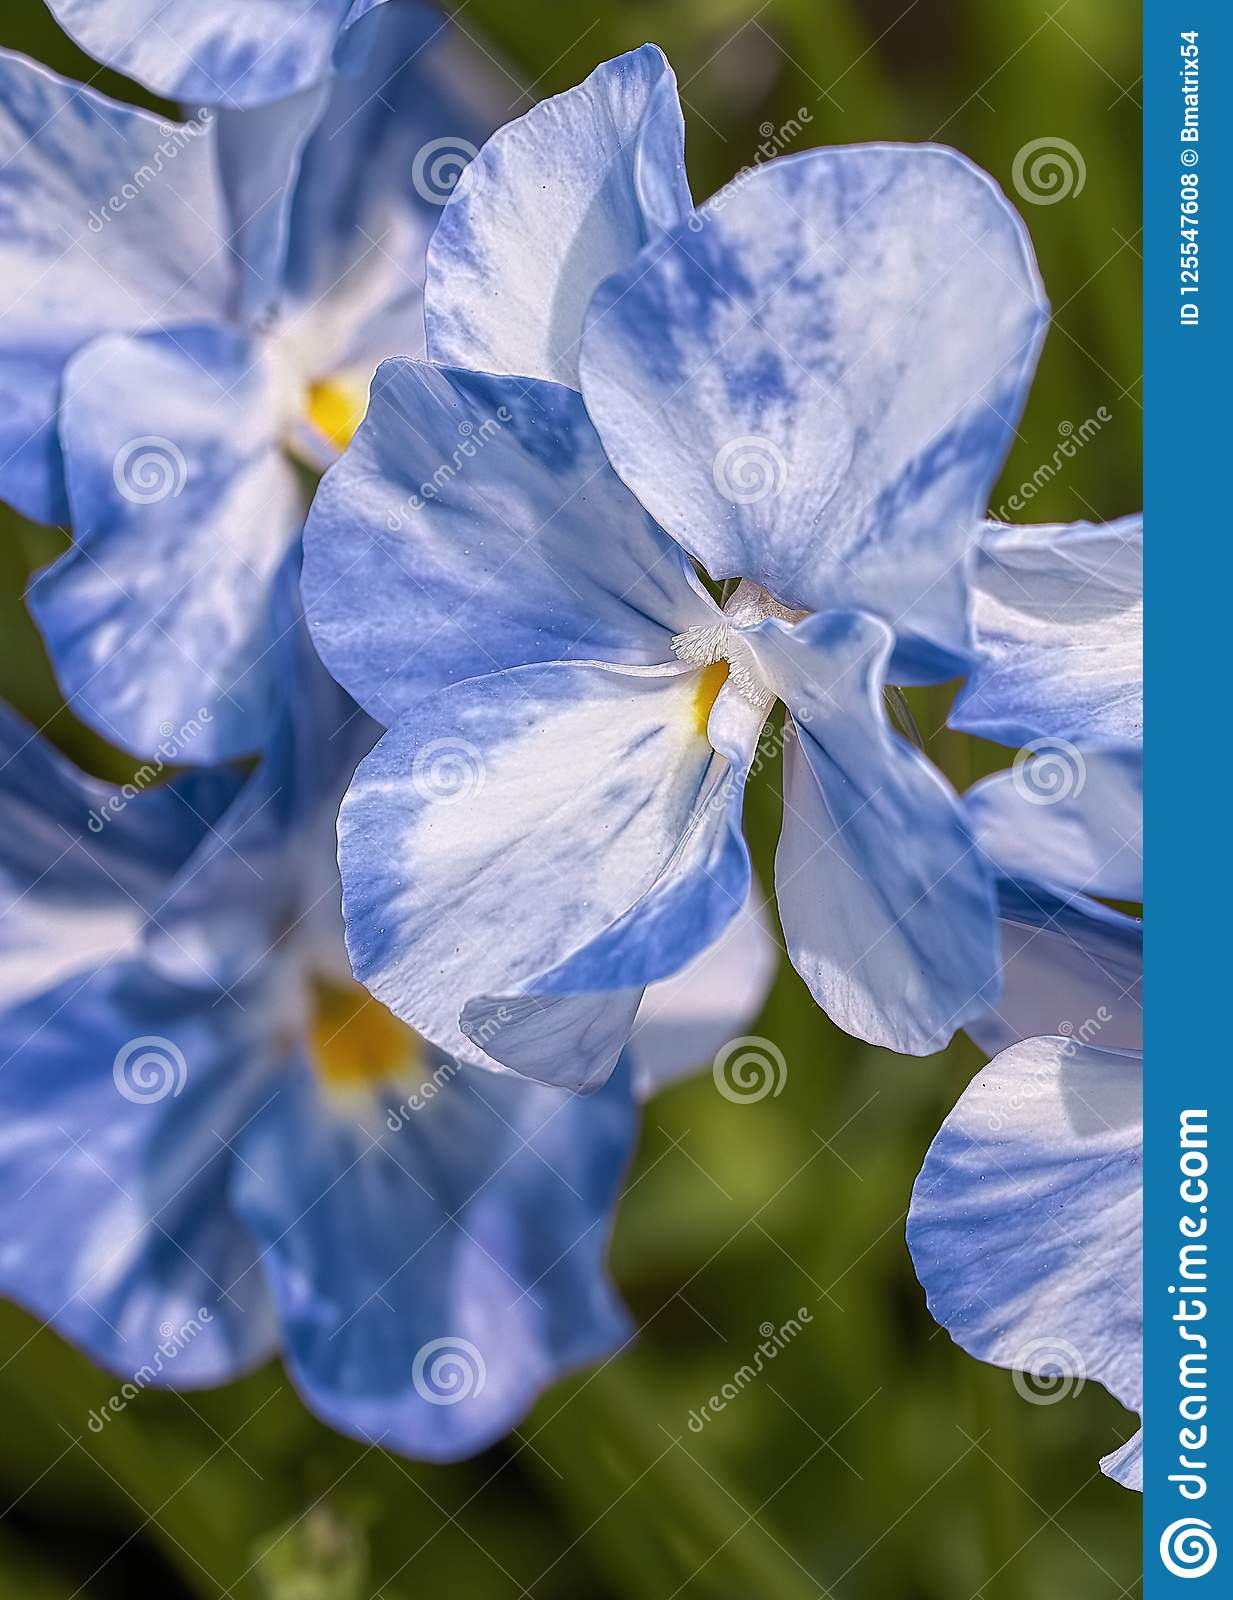 A Bouquet Of Blue Flowers Stock Photo Image Of Bright 125547608